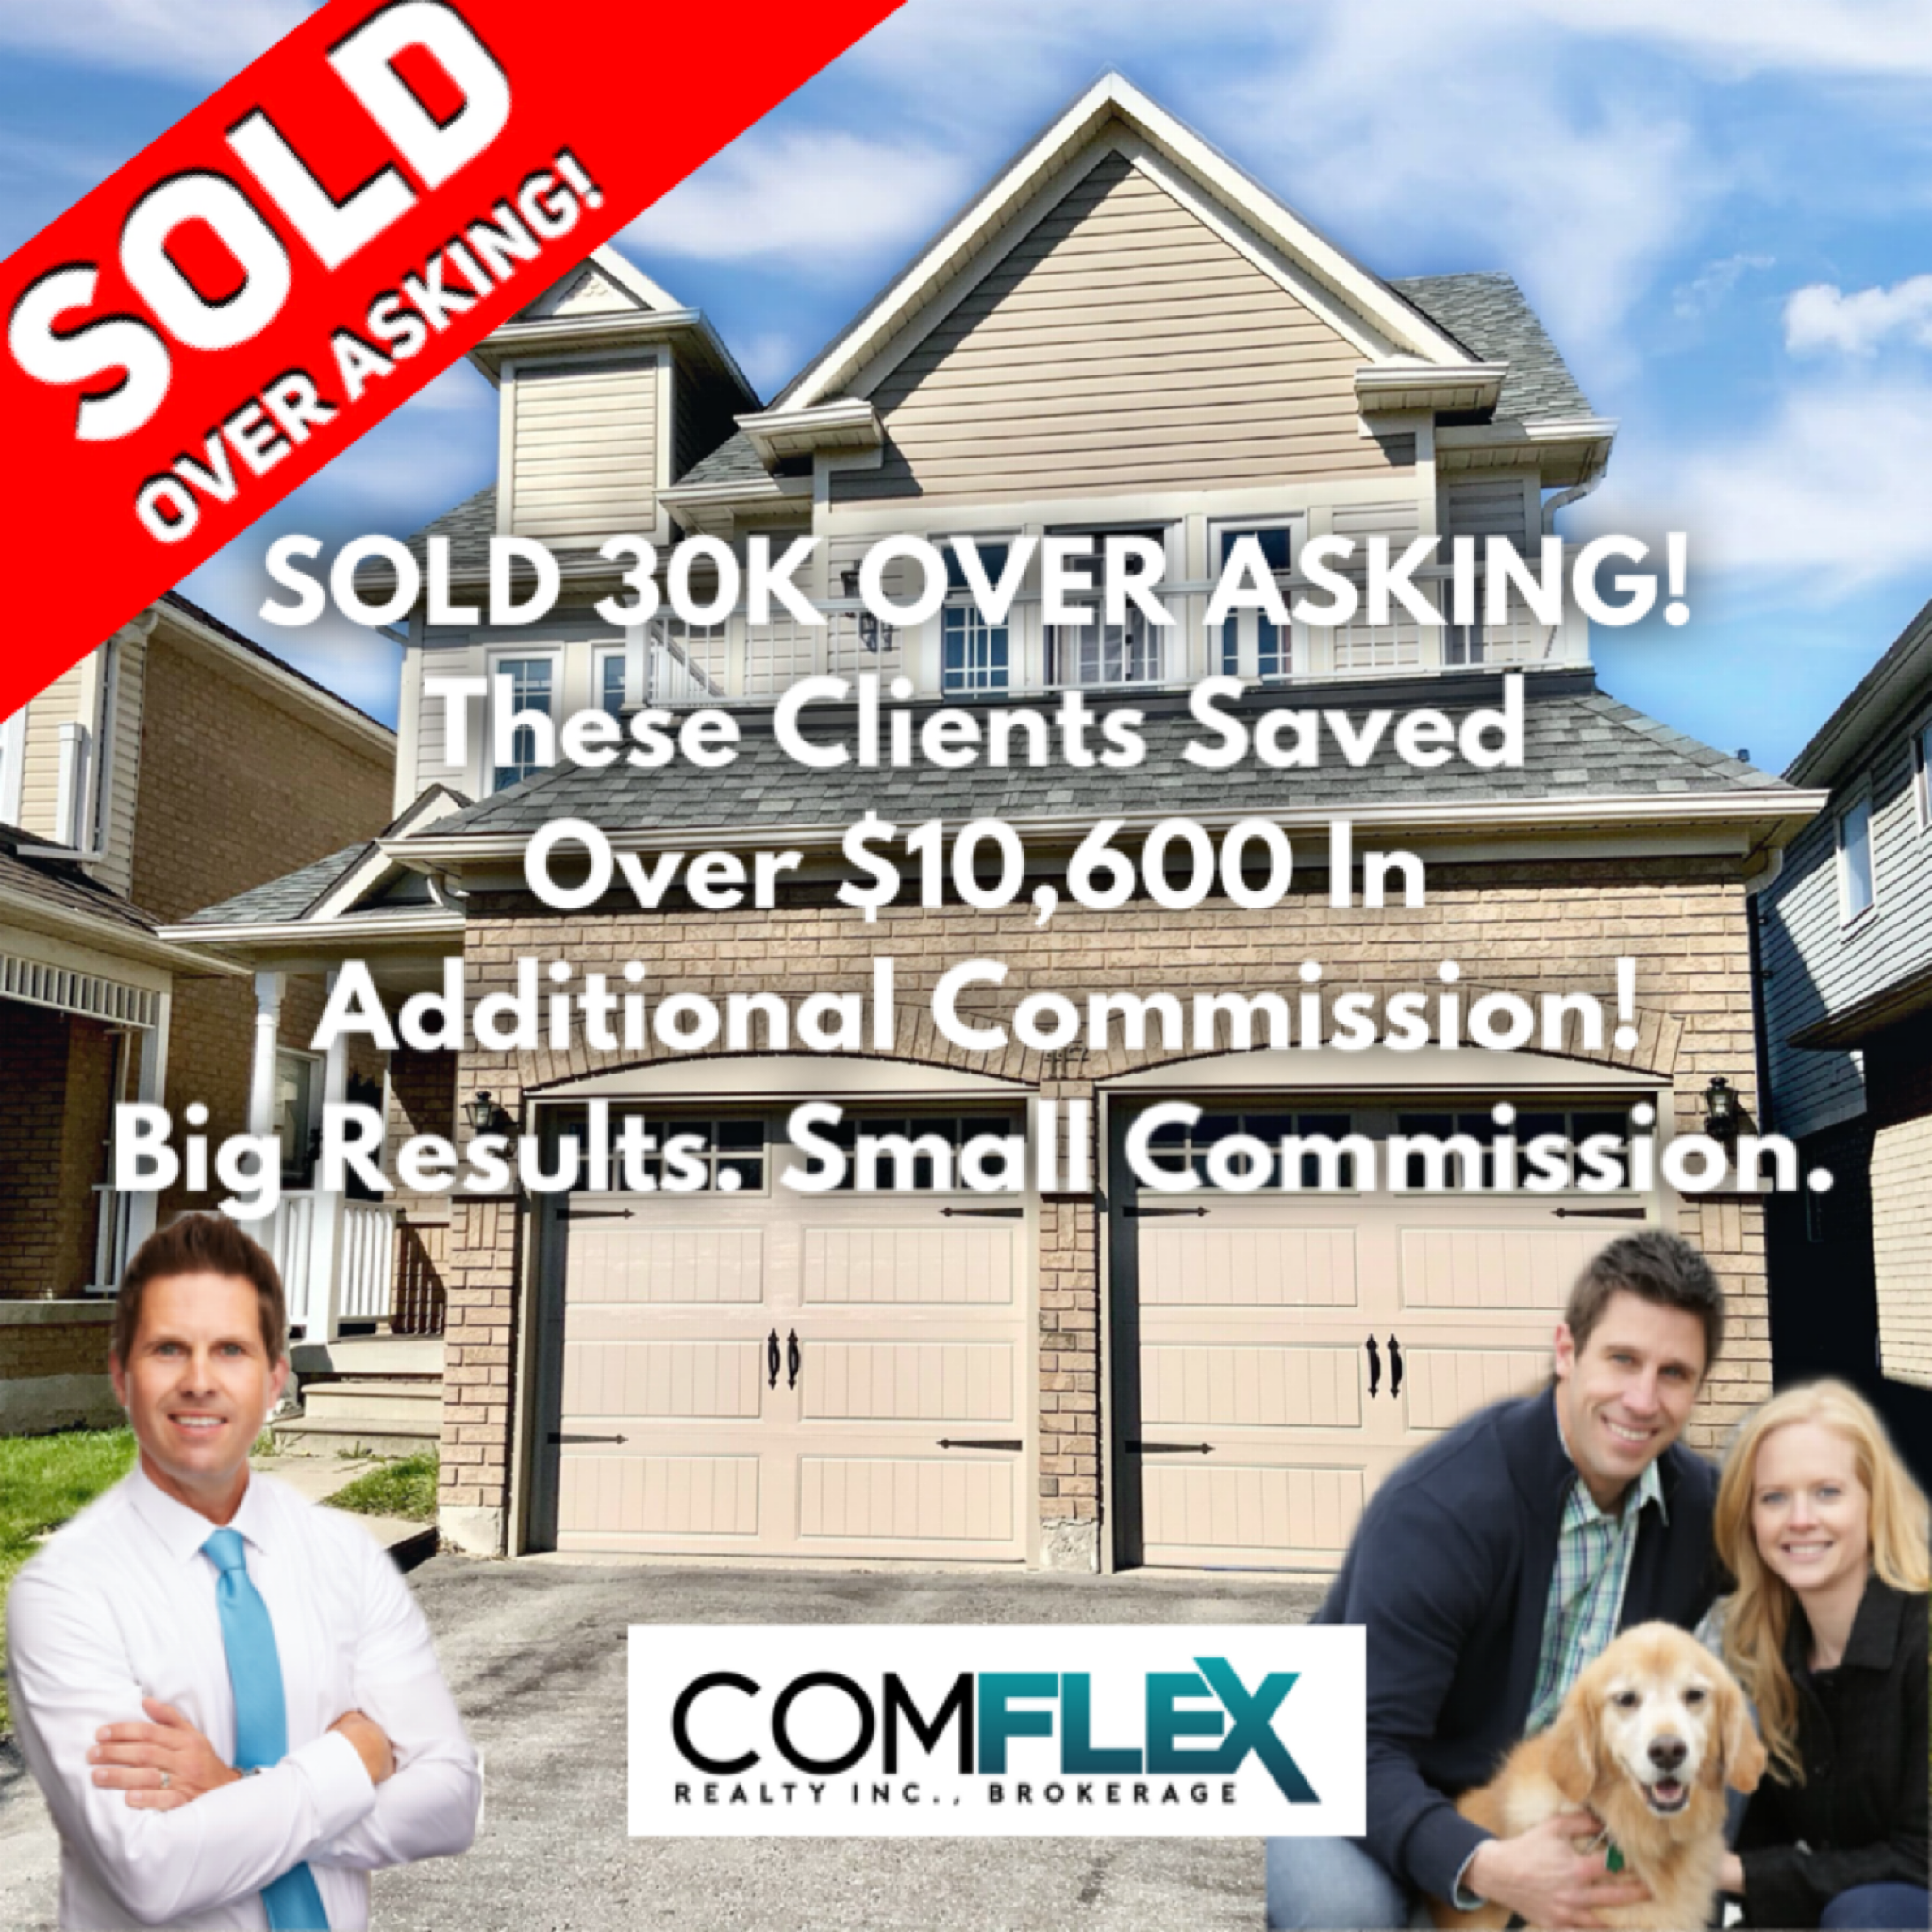 SOLD 30K OVER ASKING!  ADDITIONAL COMMISSION SAVINGS OF OVER $10,600